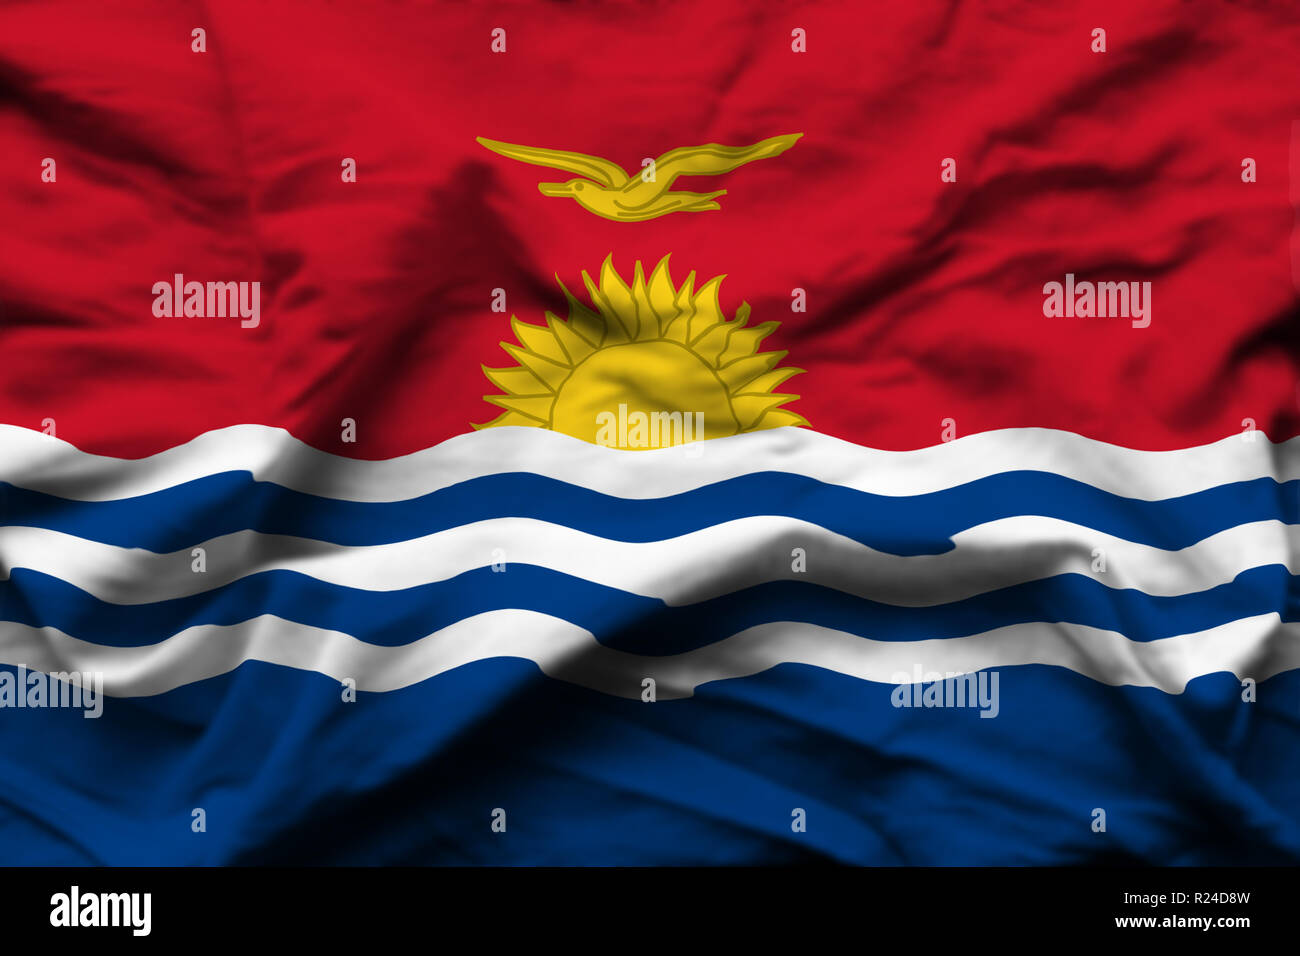 Kiribati 3D wrinkled flag illustration. Usable for background and texture. - Stock Image